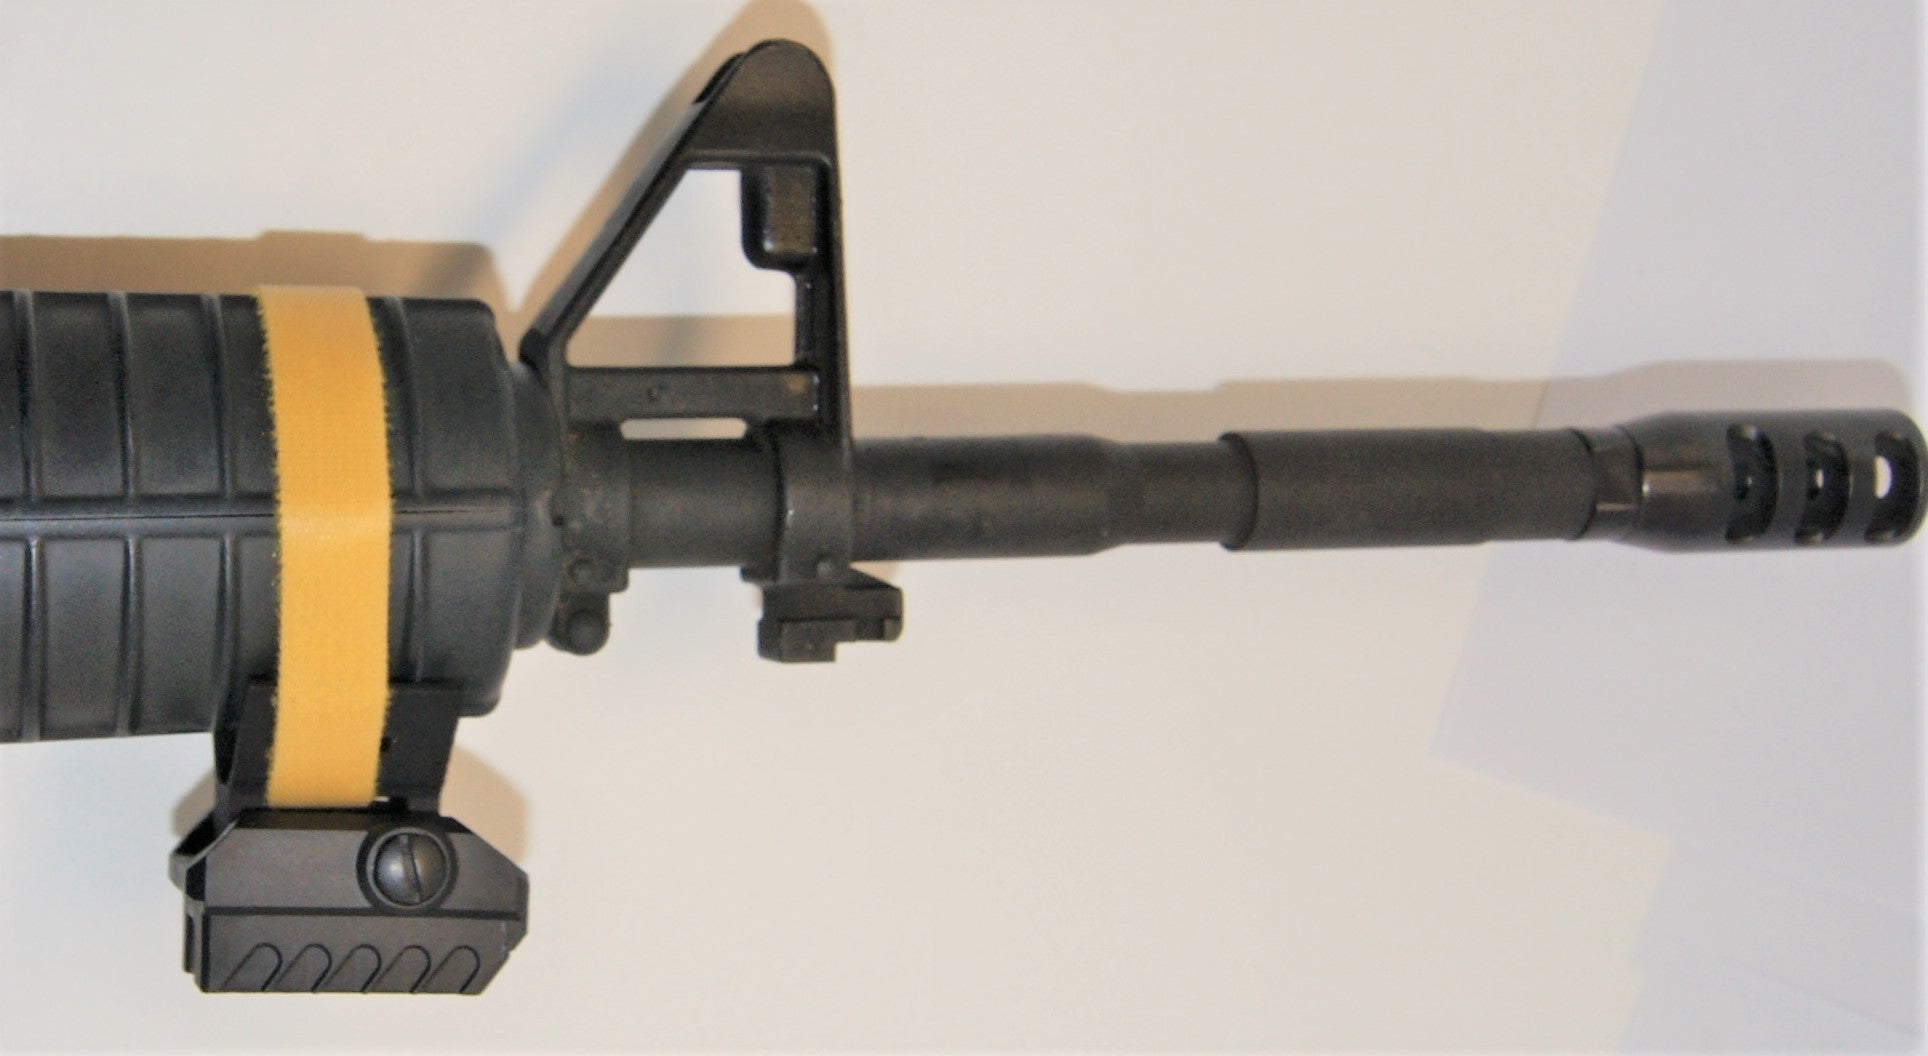 Xmount for MatisX sensor on rifels and air rifles MantisX sensor with Xmount atached AR 15